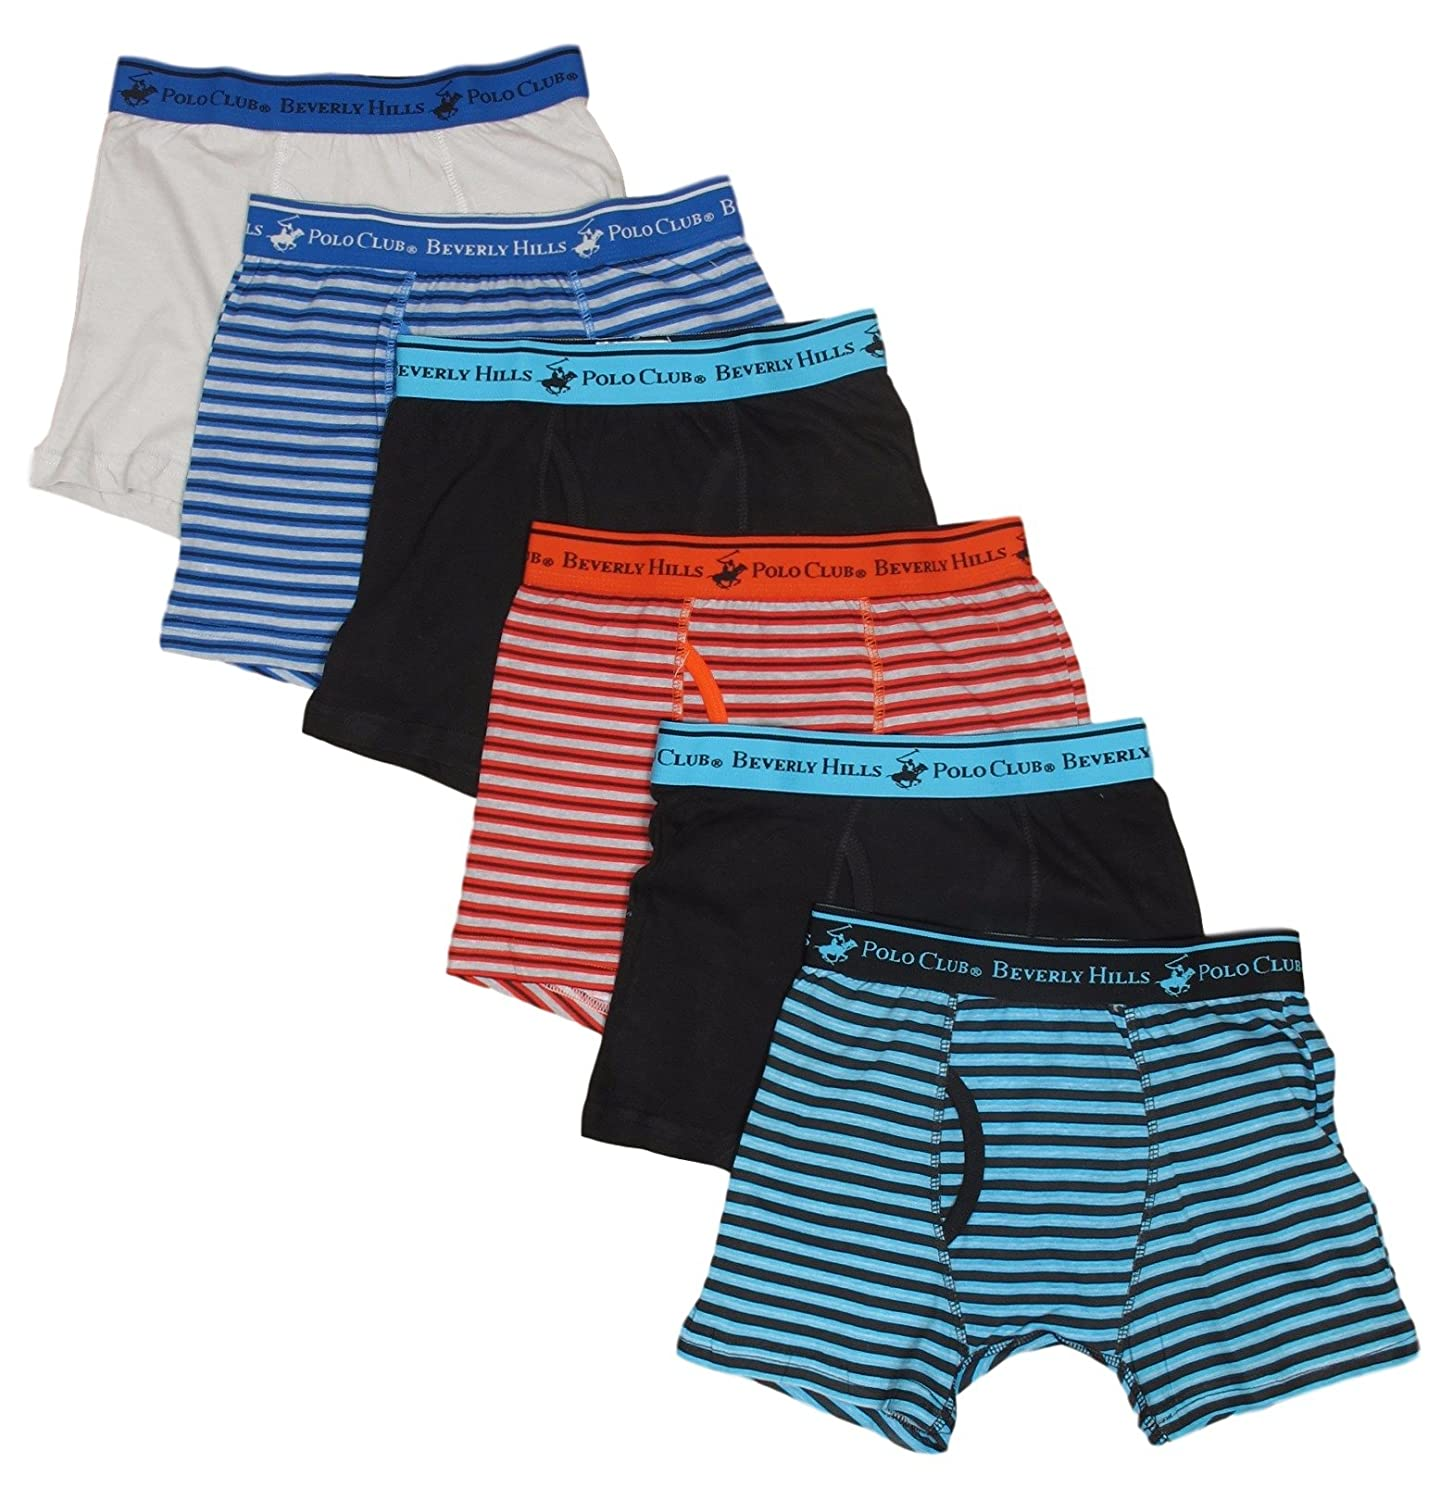 Beverly Hills Polo Club Boys' Boxer Briefs (Pack of 6)